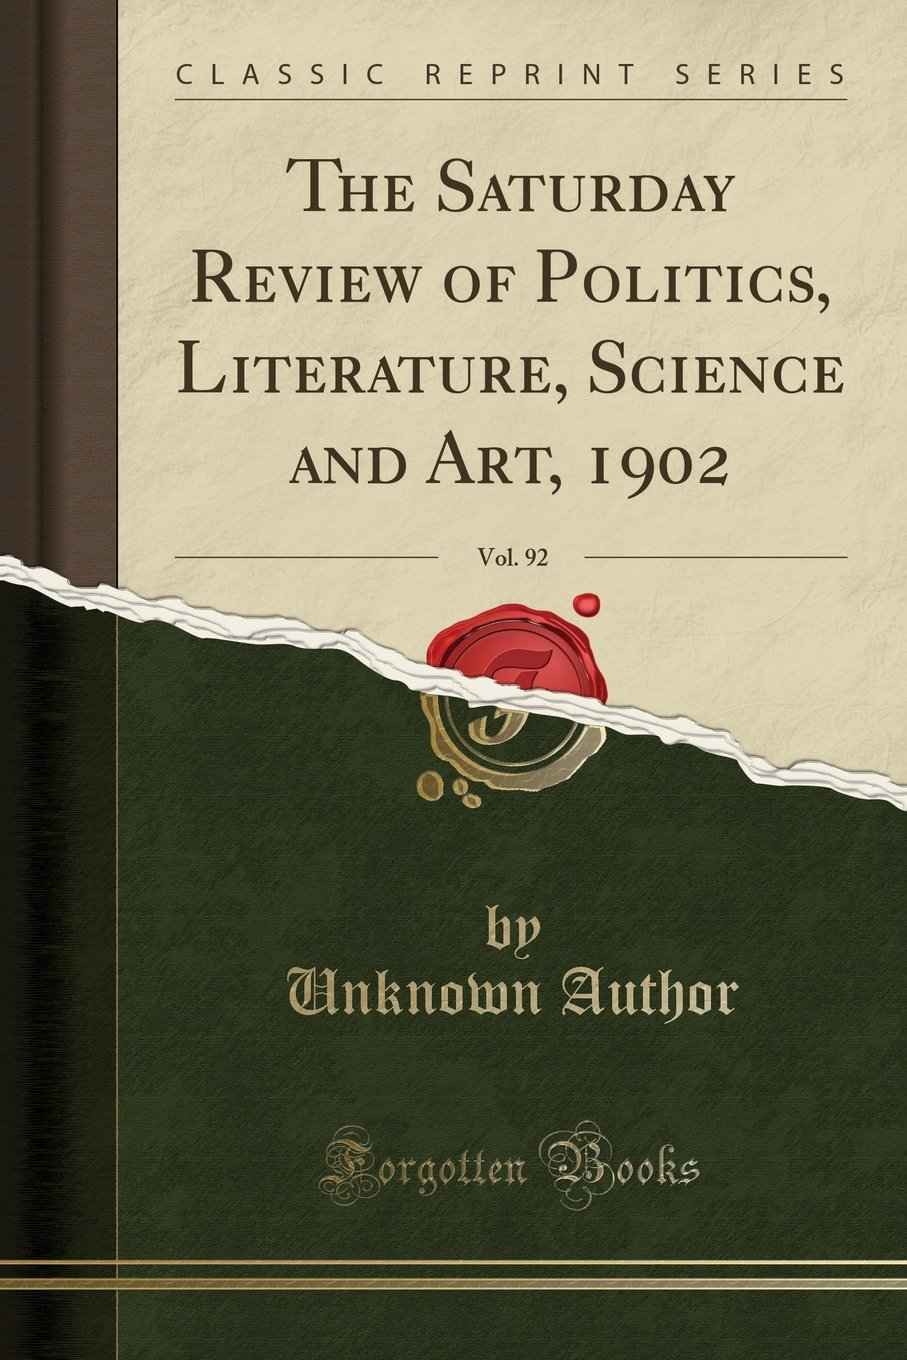 The Saturday Review of Politics, Literature, Science and Art, 1902, Vol. 92 (Classic Reprint) PDF ePub book